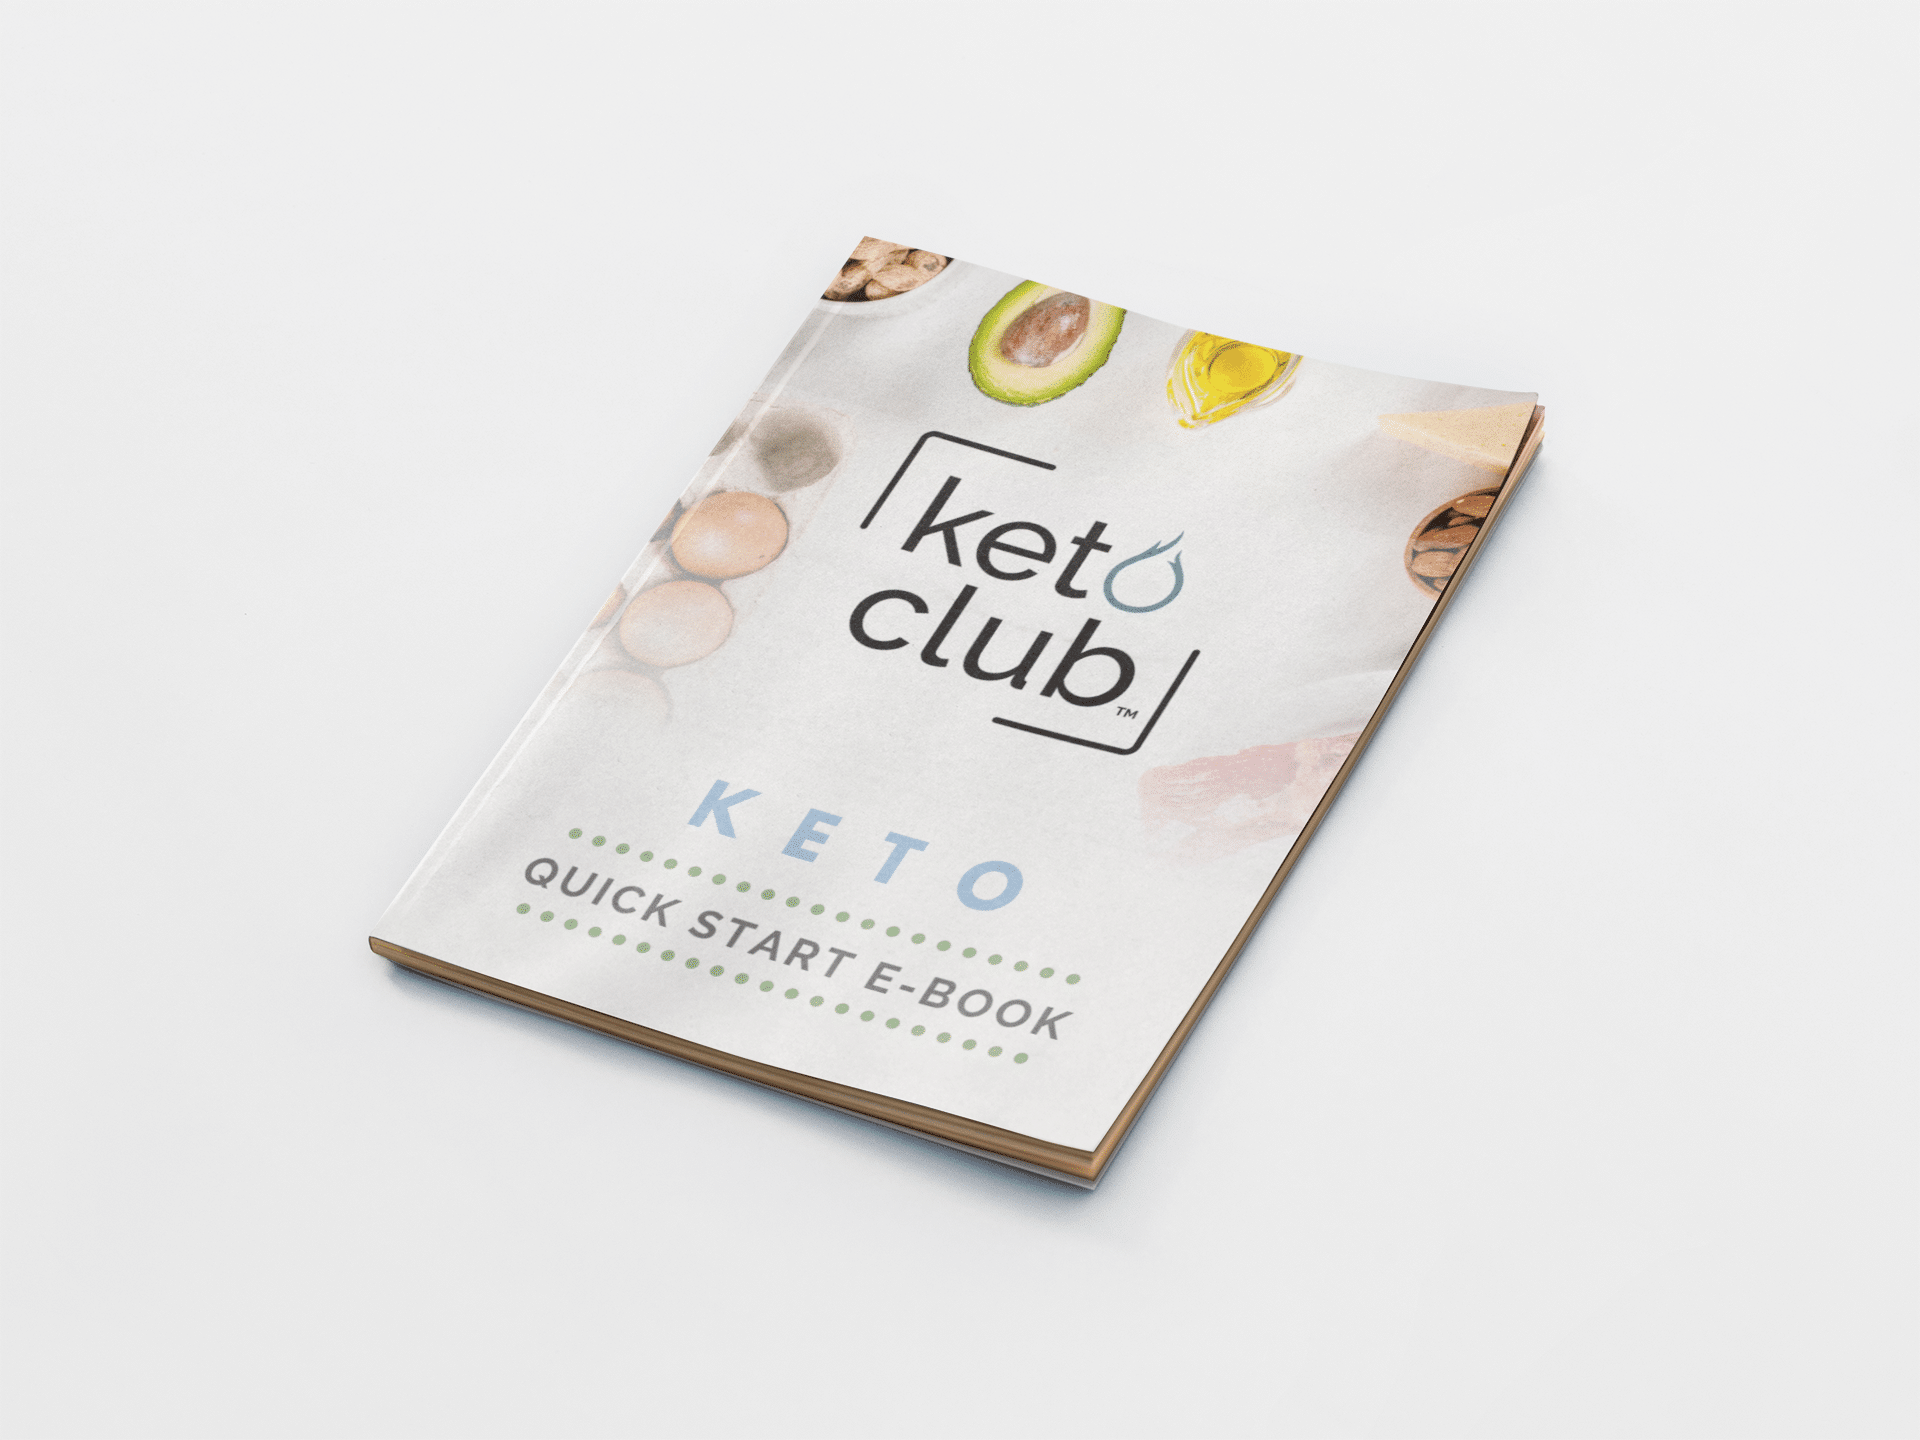 KETO Quick Start Ebook